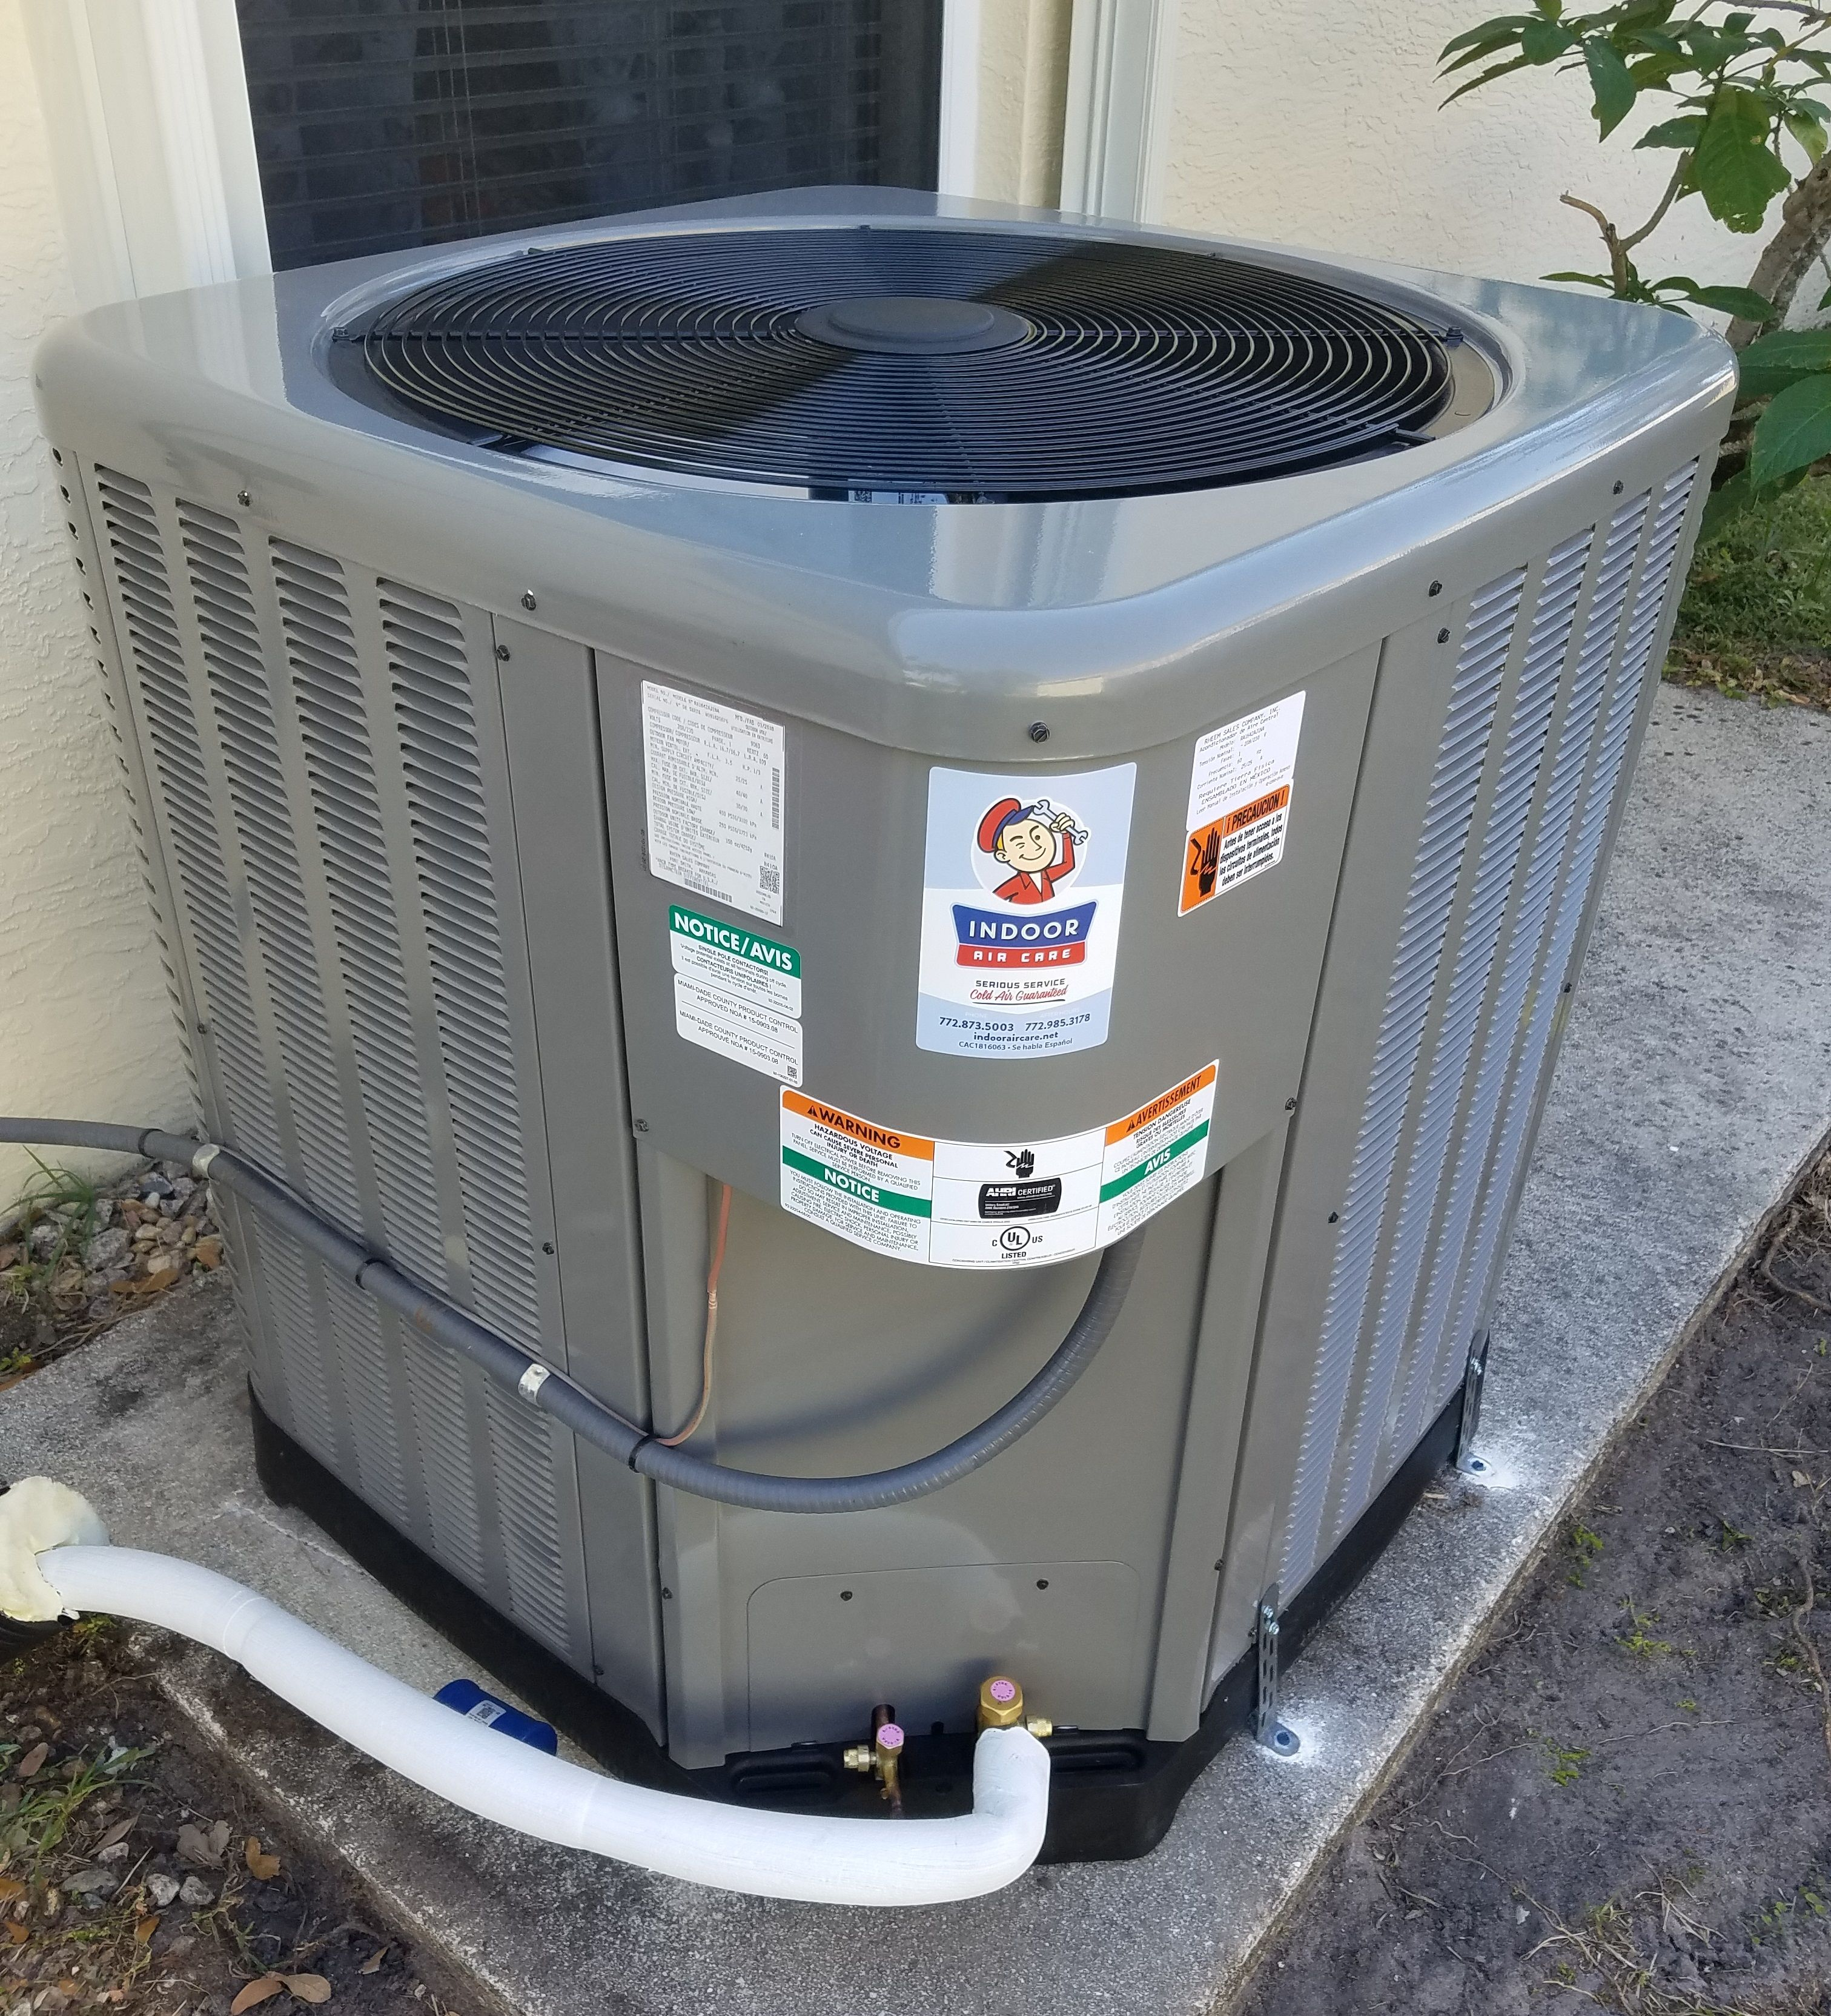 Our Technicians' expertise allows Indoor Air Care to offer